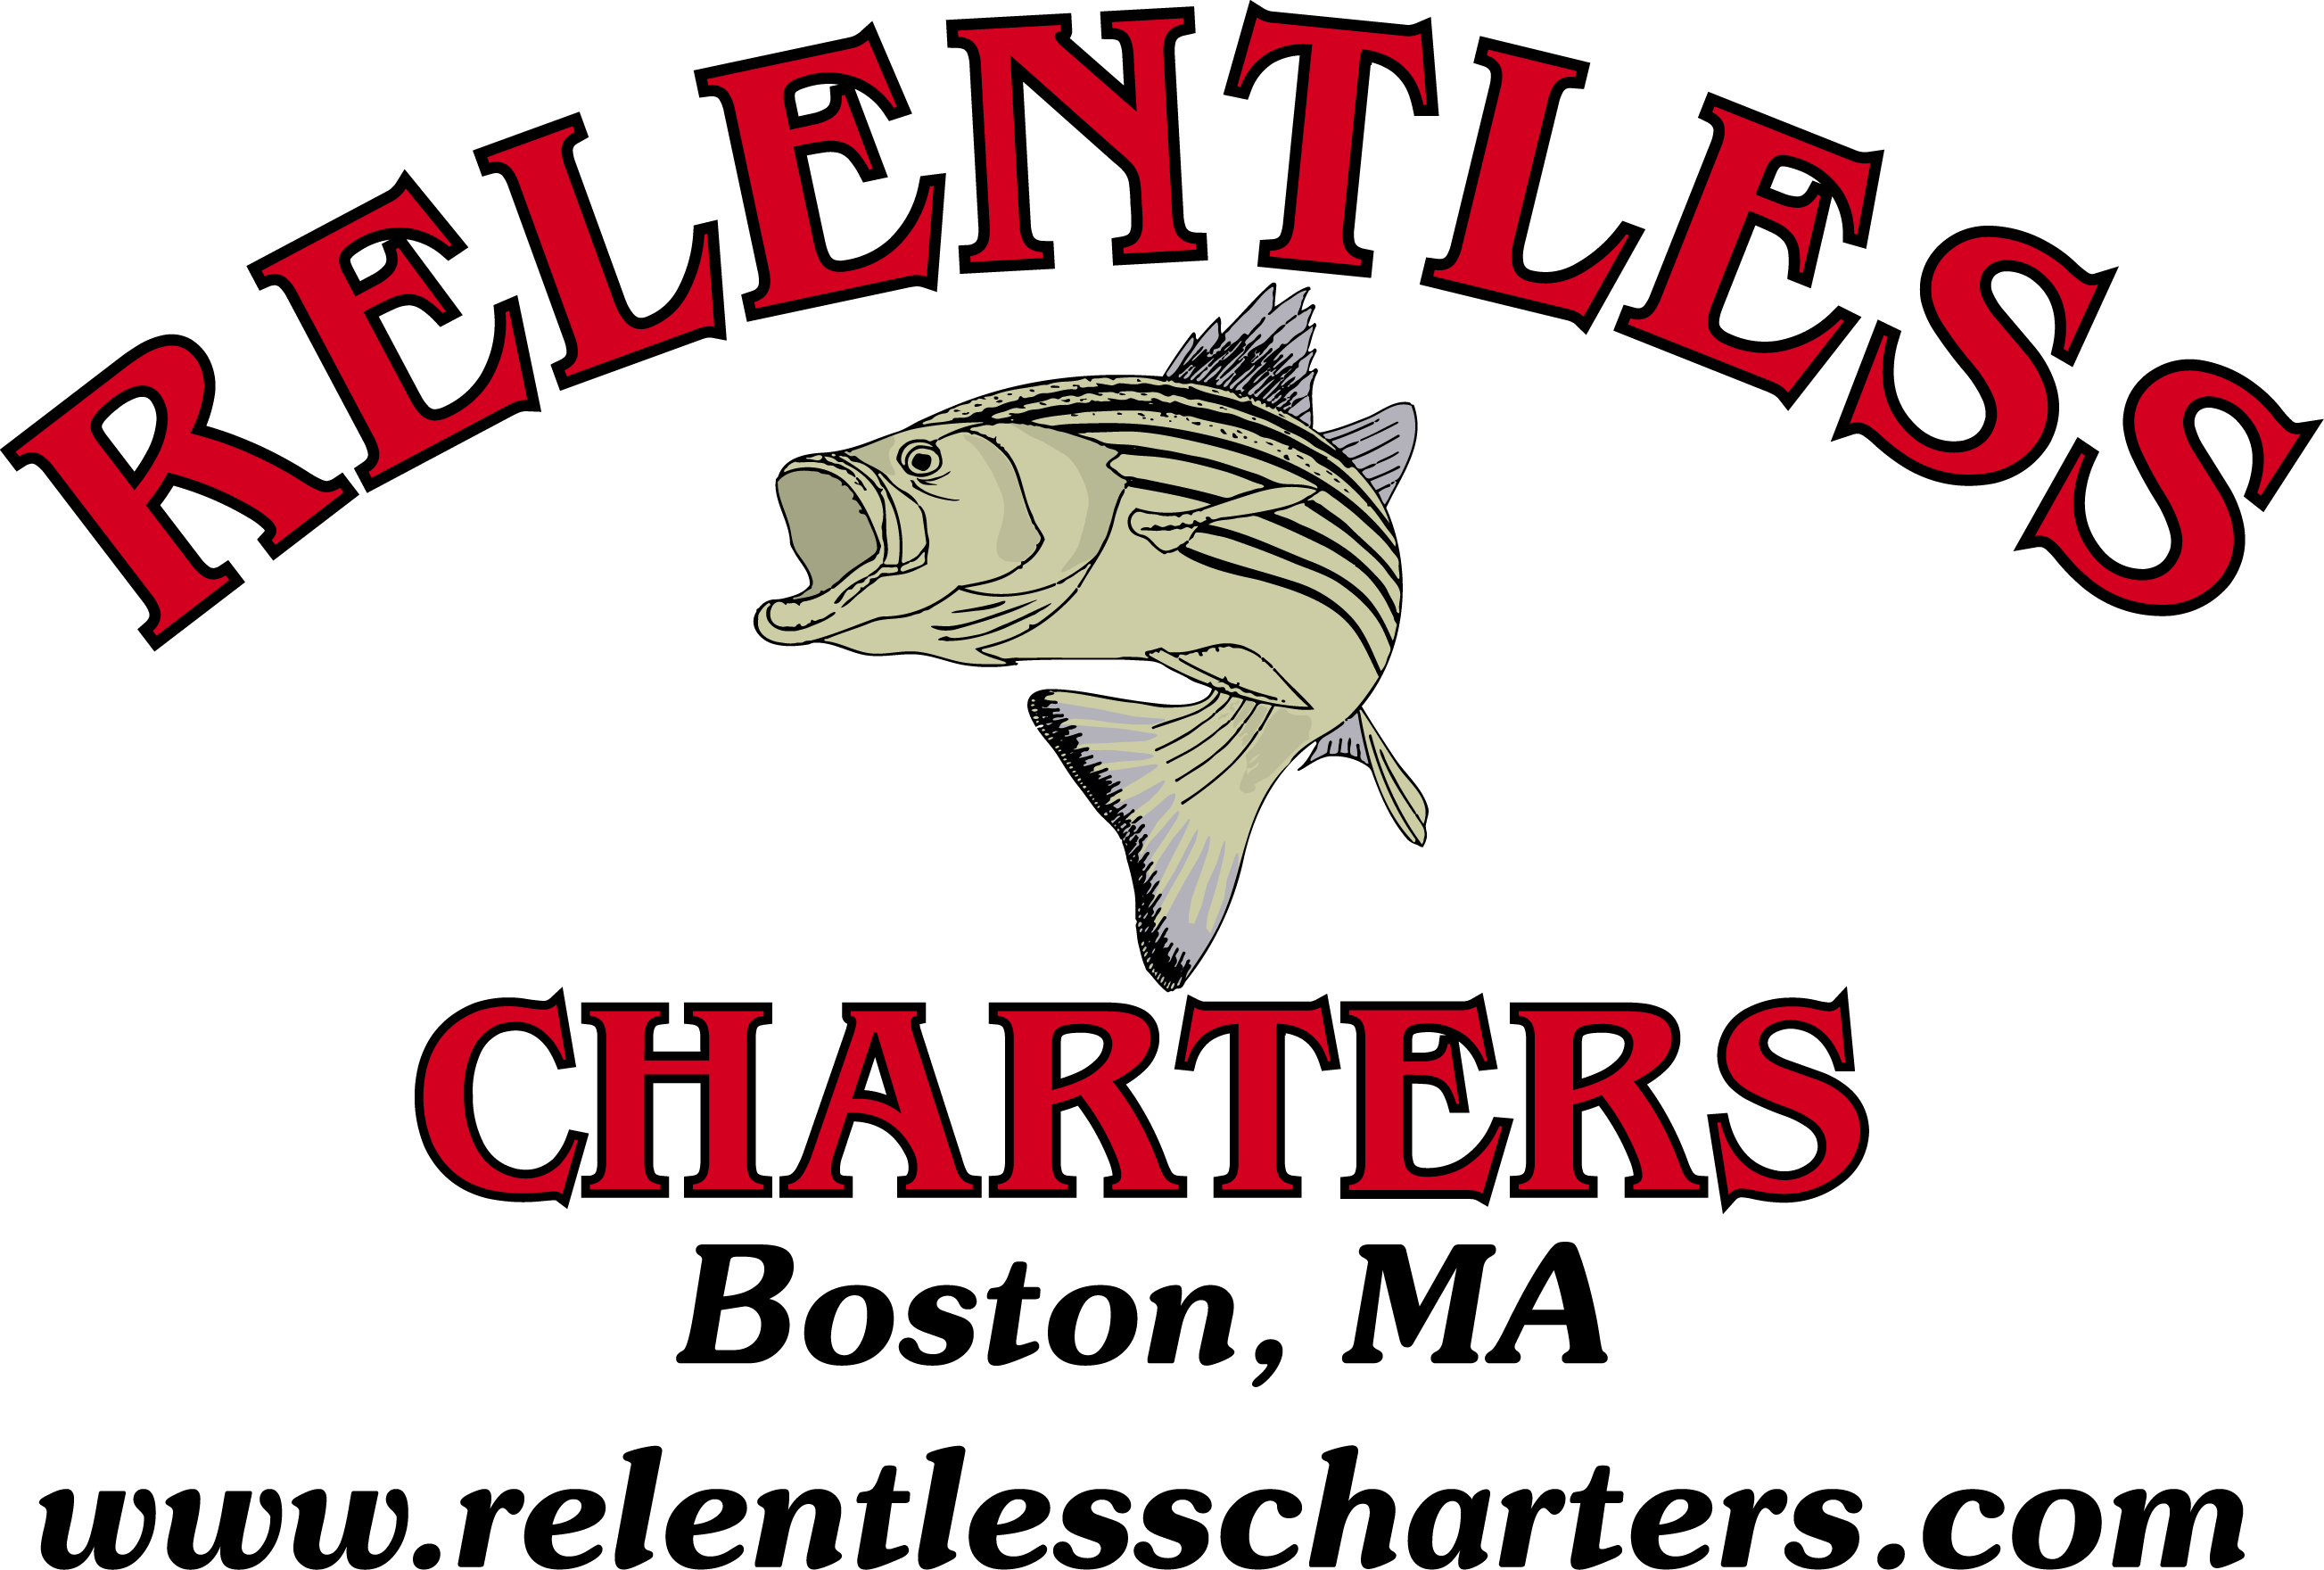 Relentless charters boston harbor ma for Boston harbor fishing report